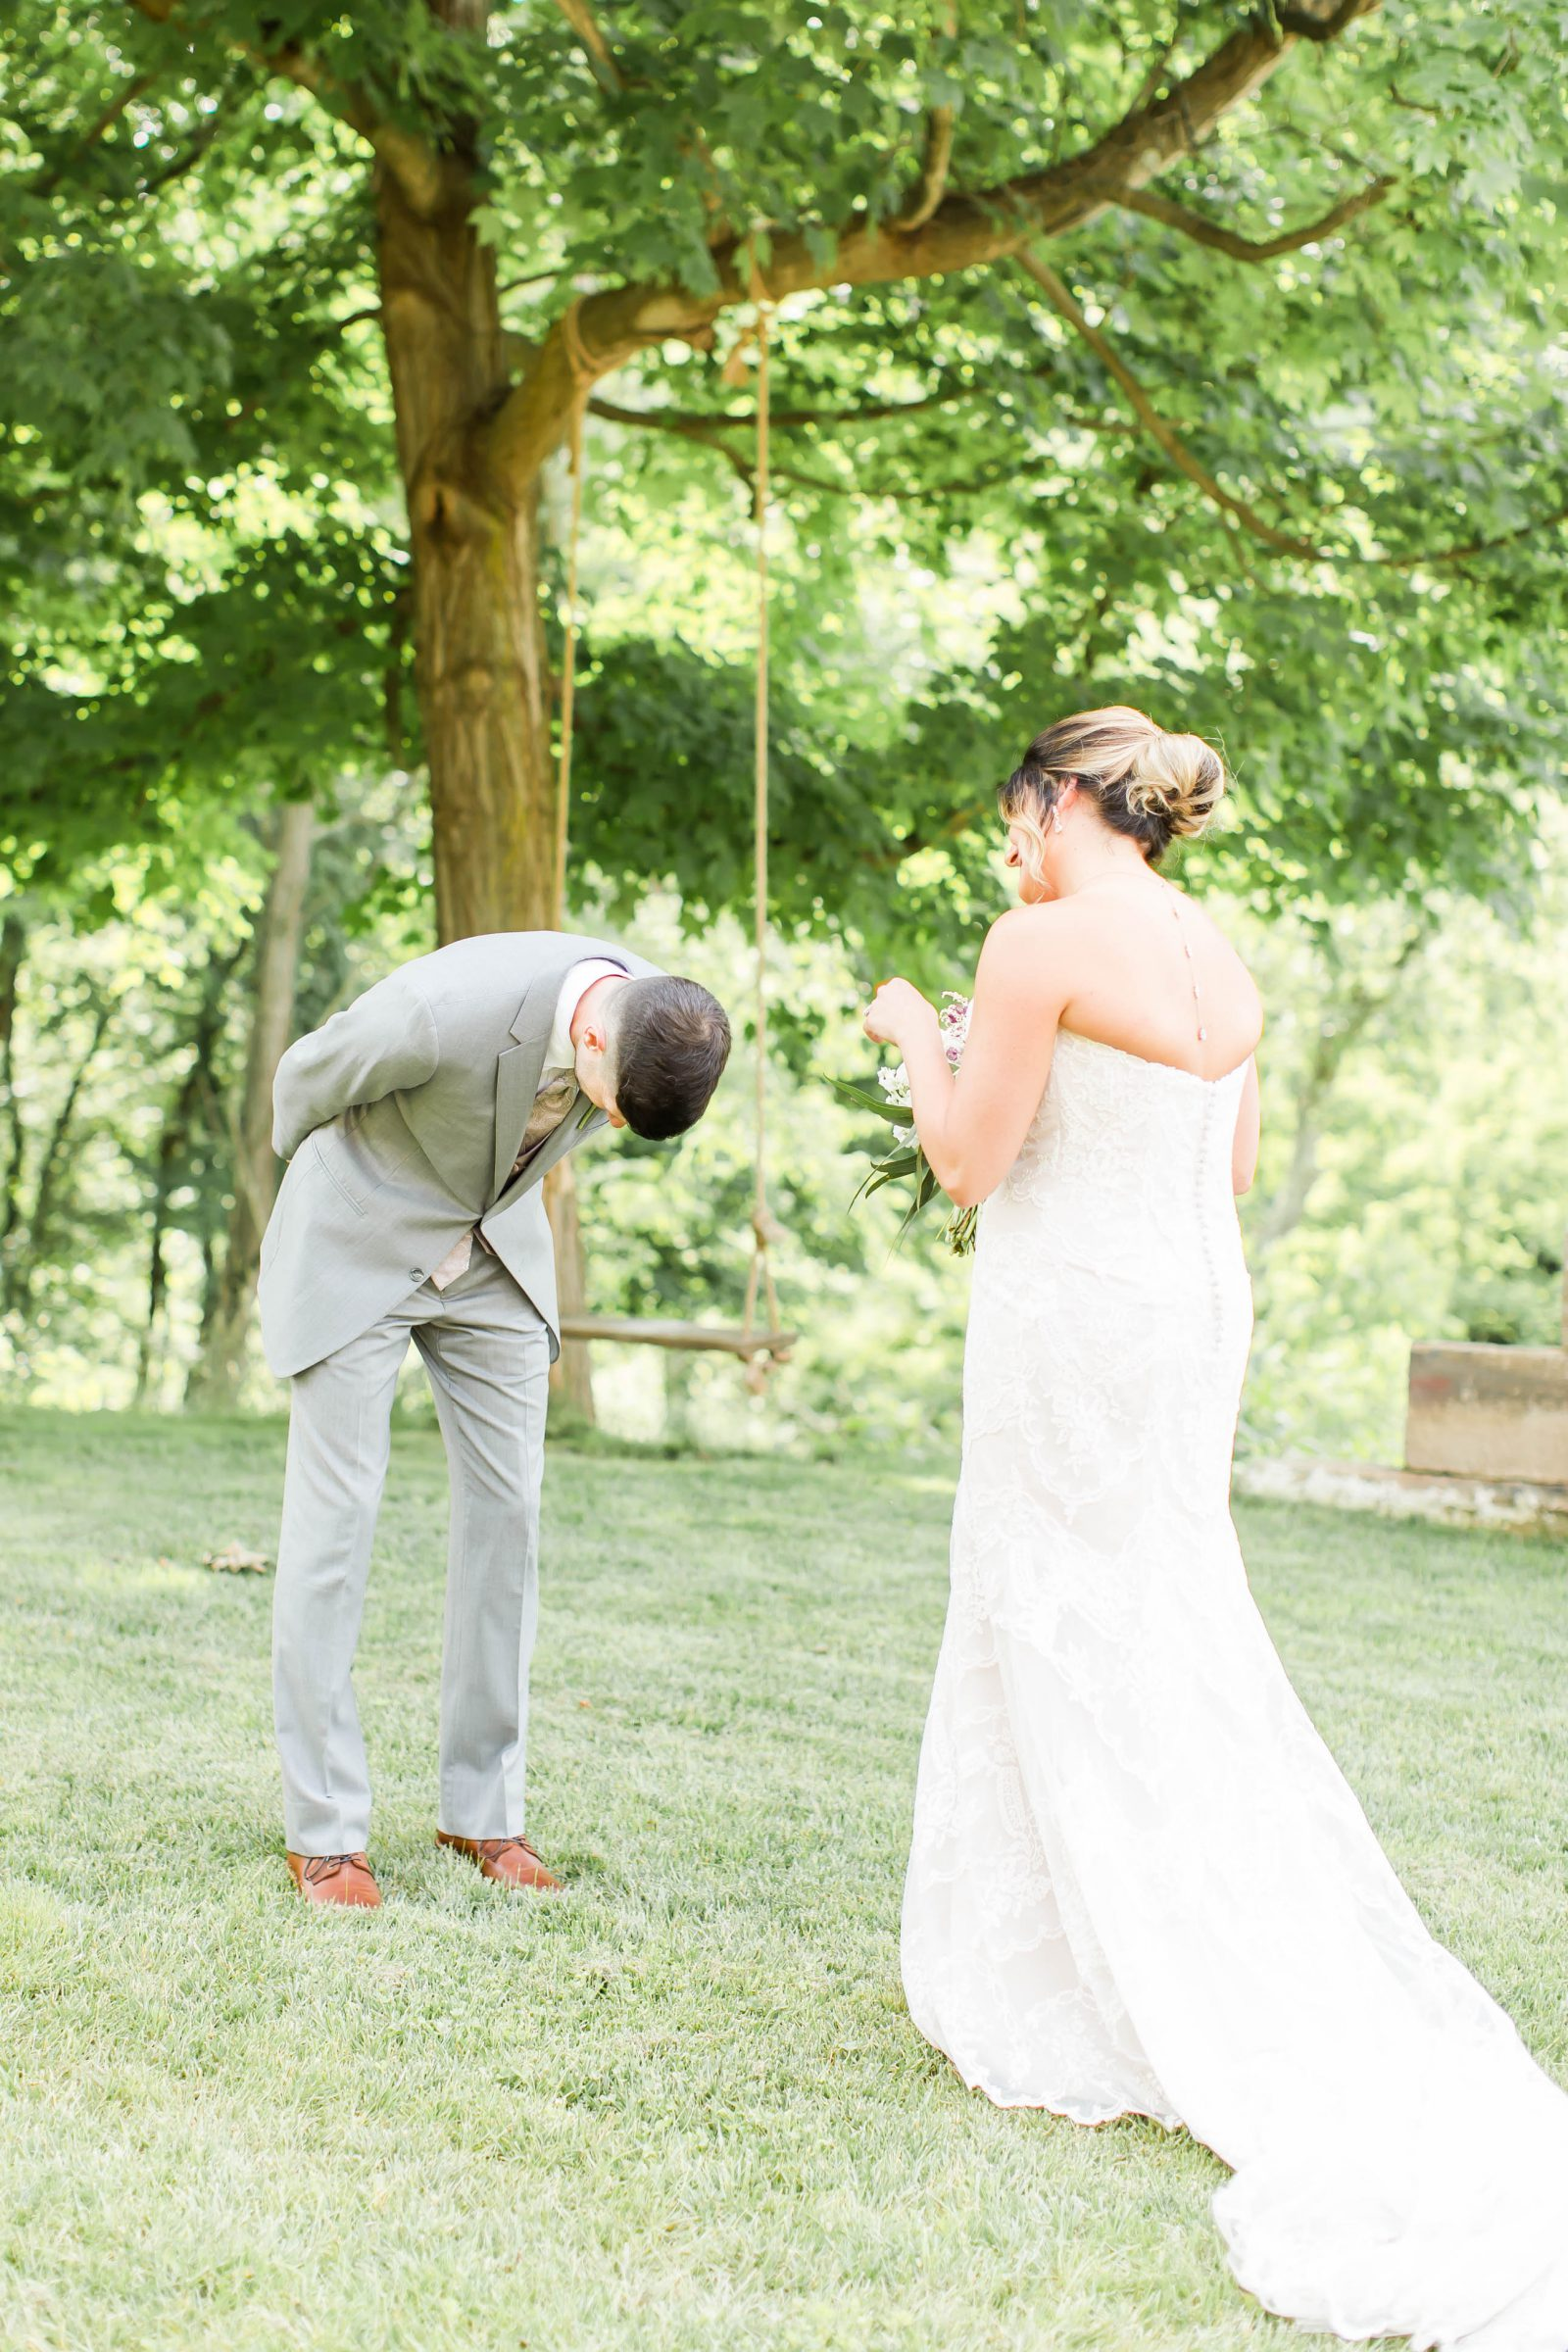 rivercrest-farm-summer-wedding-loren-jackson-photography-29